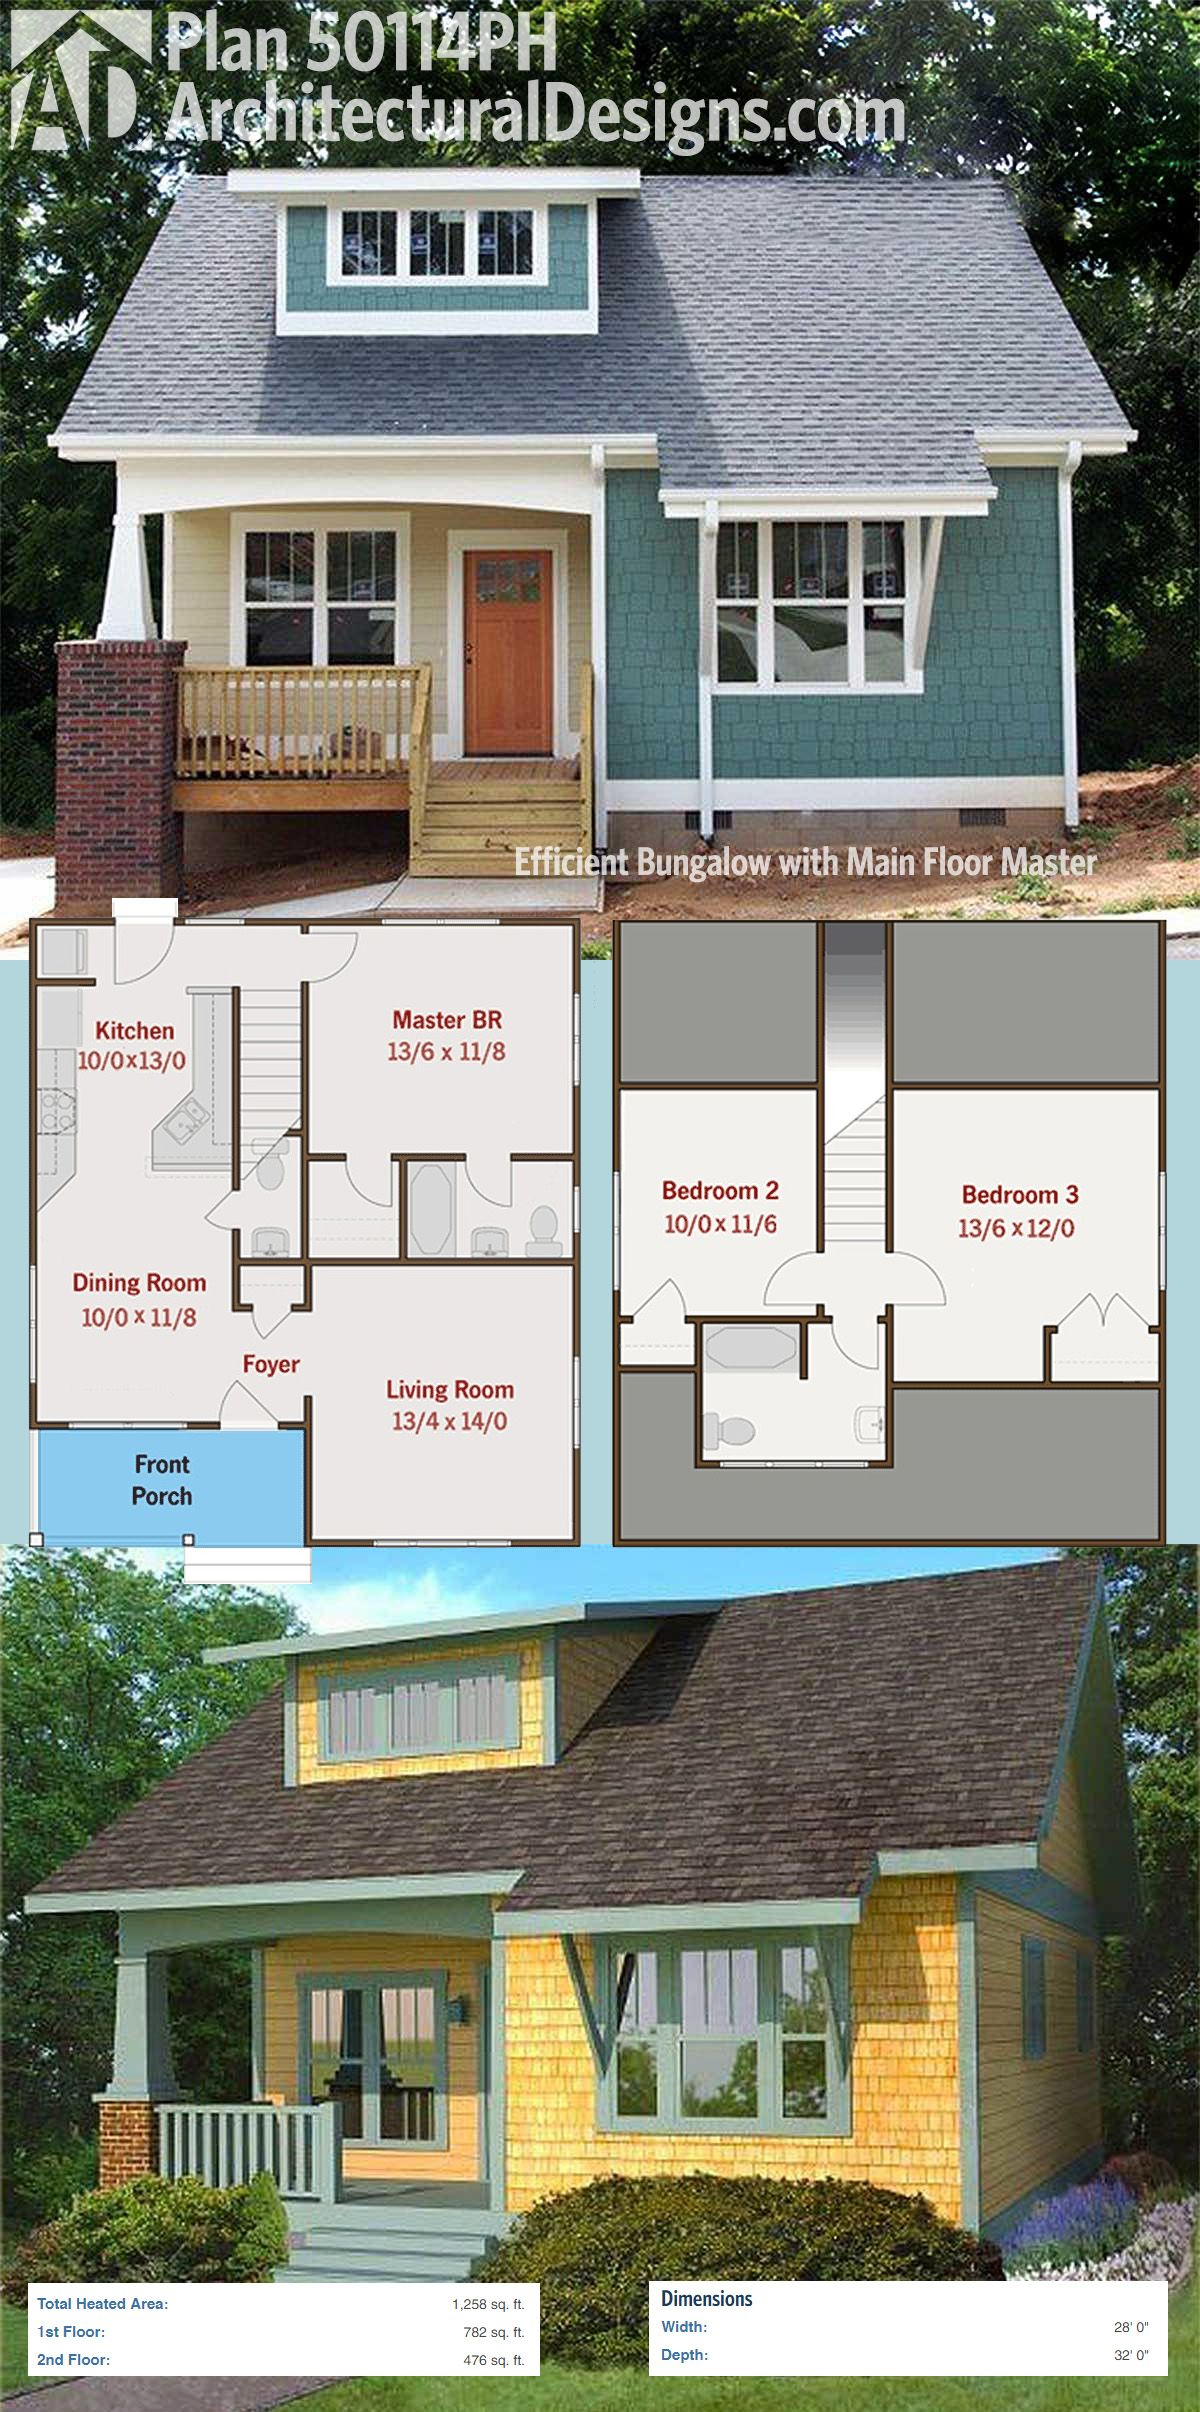 Architectural designs bed bungalow house plan has  functioning shed dormer and cozy front porch ready when you are where do want to build also rh pinterest